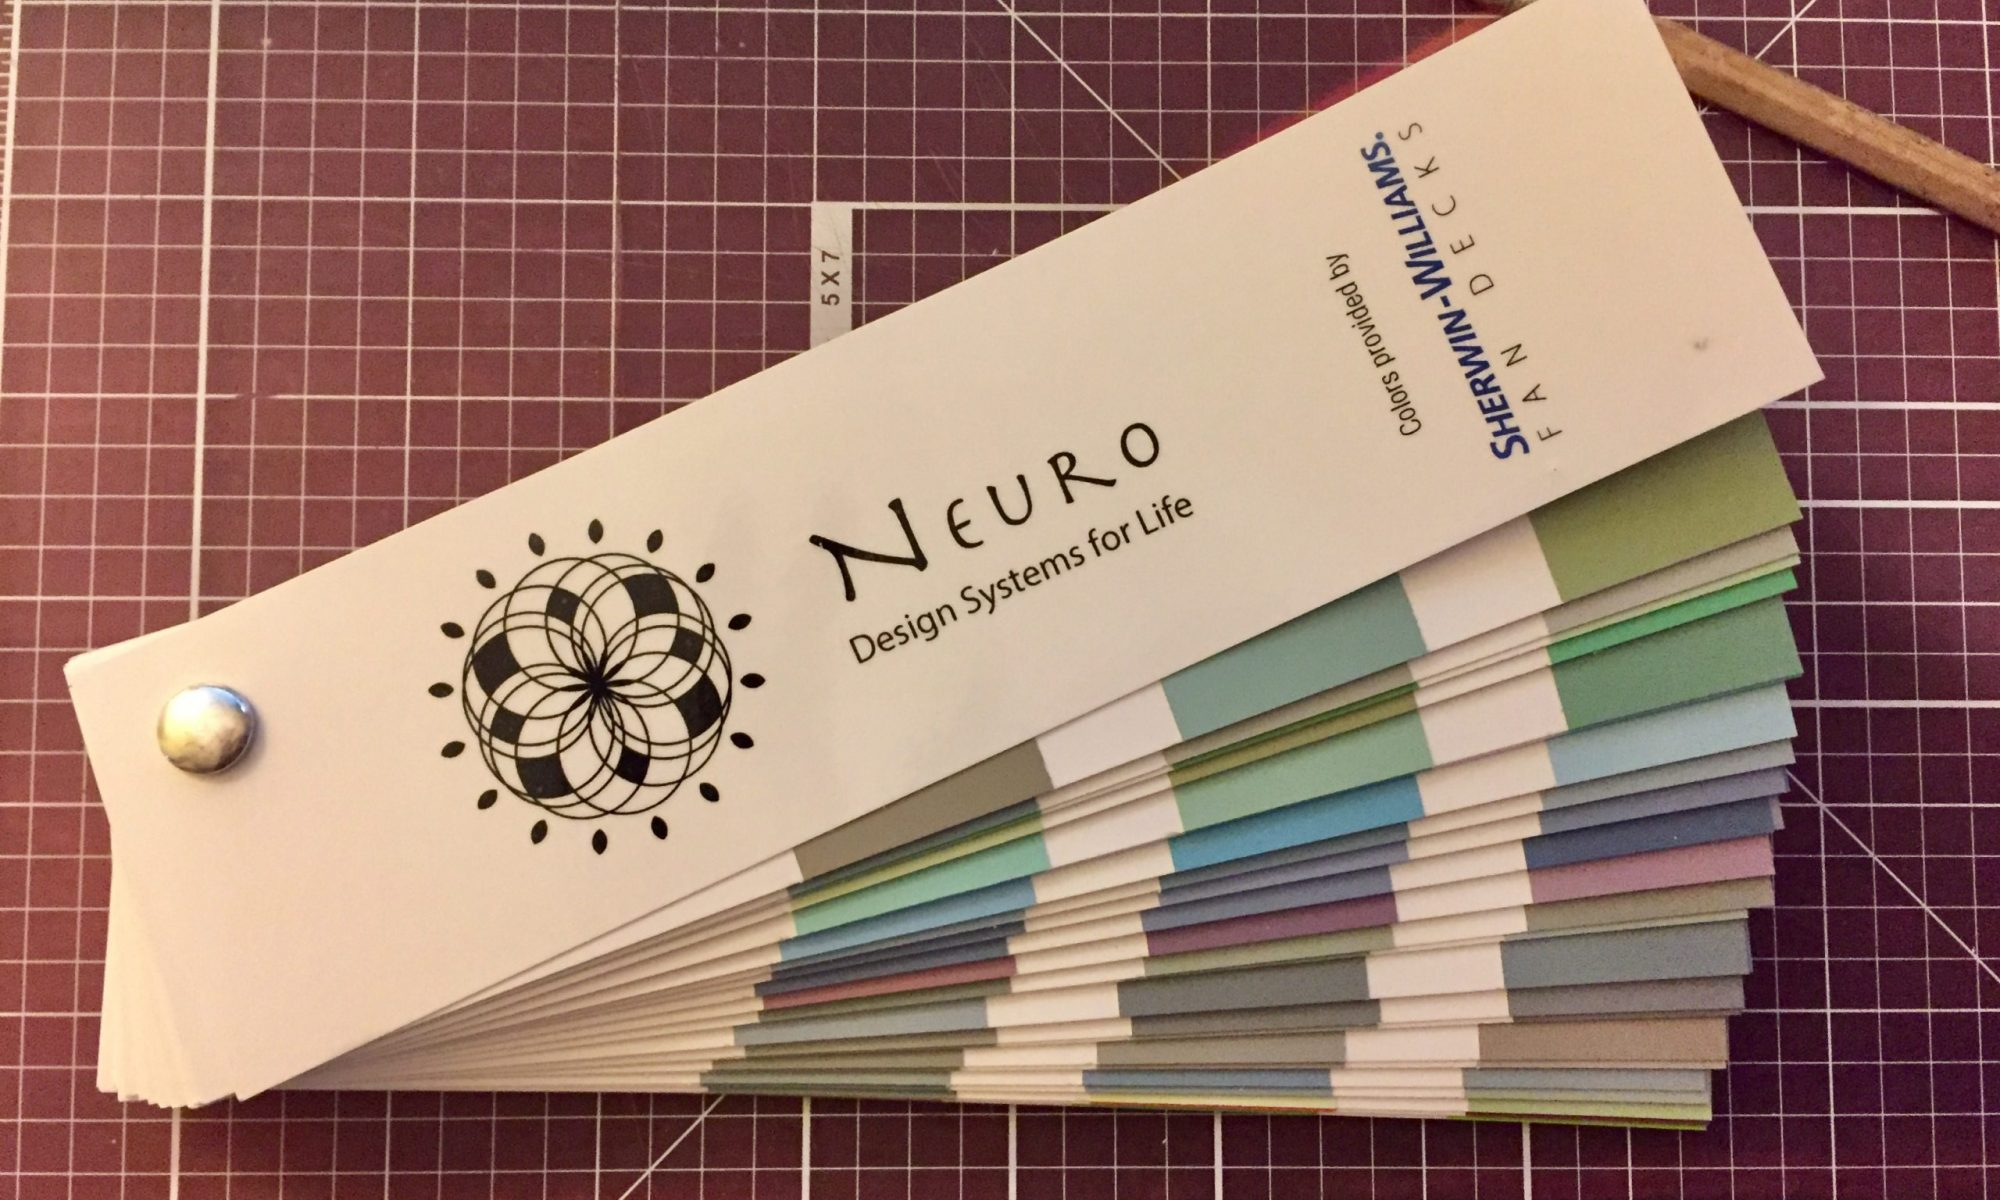 150 colors swatches provided by Sherwin Williams Curated by Shannon Hall of Design Systems for Life for Neurodiversity Clients